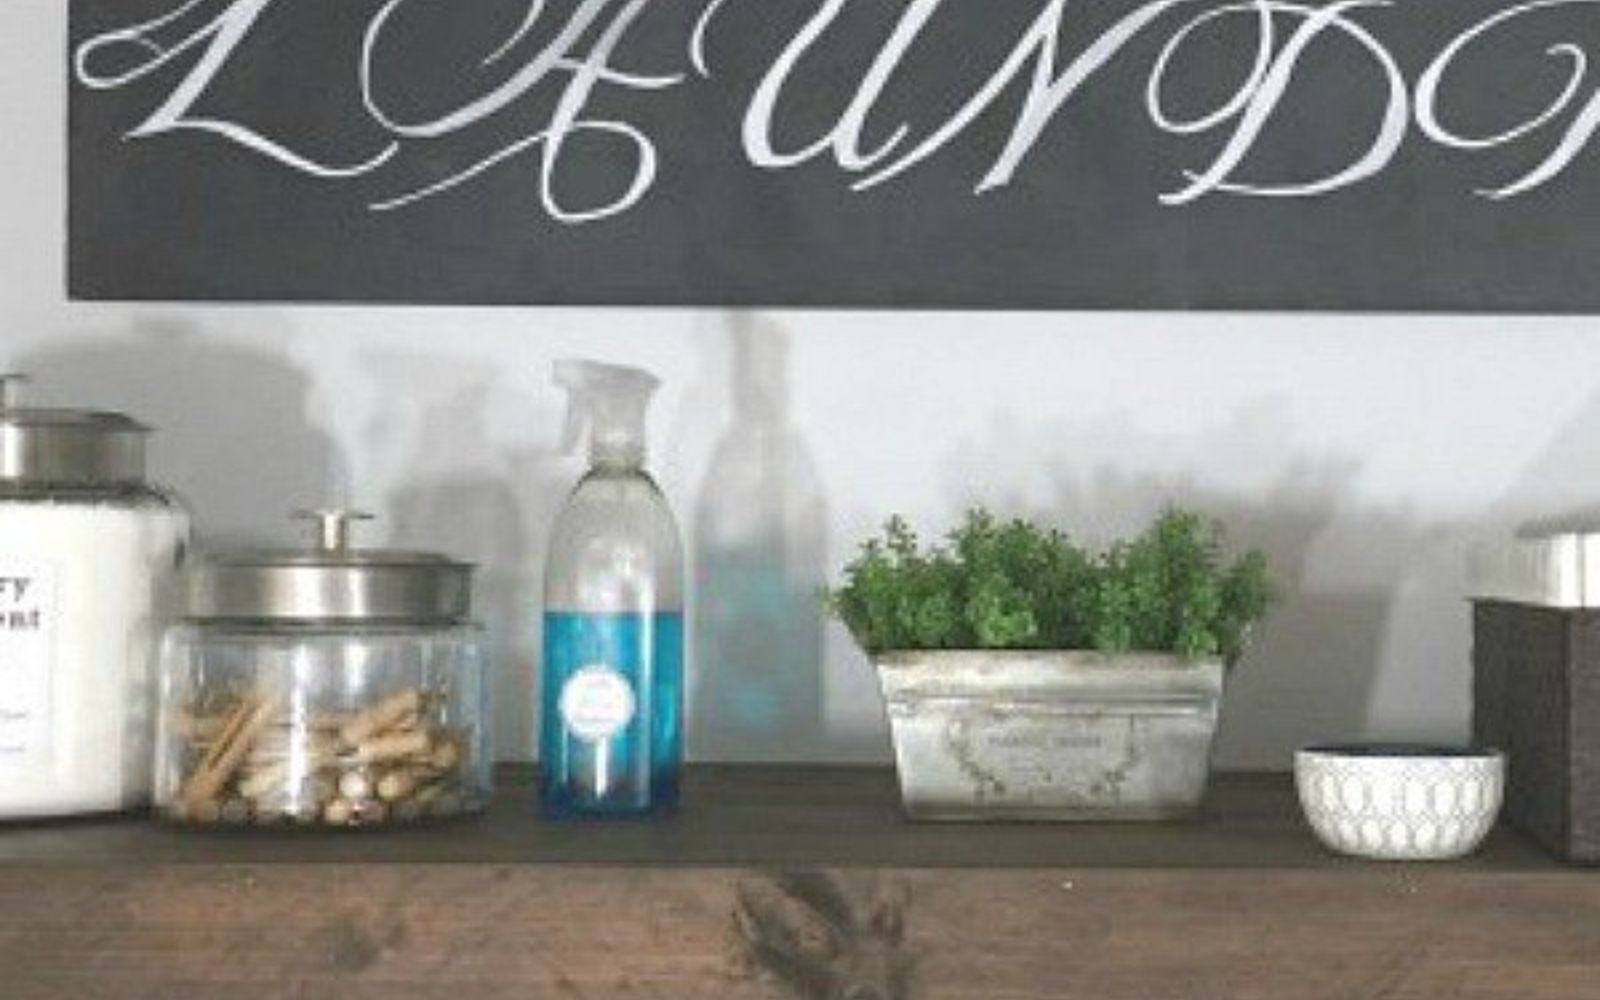 s 15 brilliant ways to reuse your empty cardboard boxes, home decor, repurposing upcycling, Paint a Chalkboard Sign